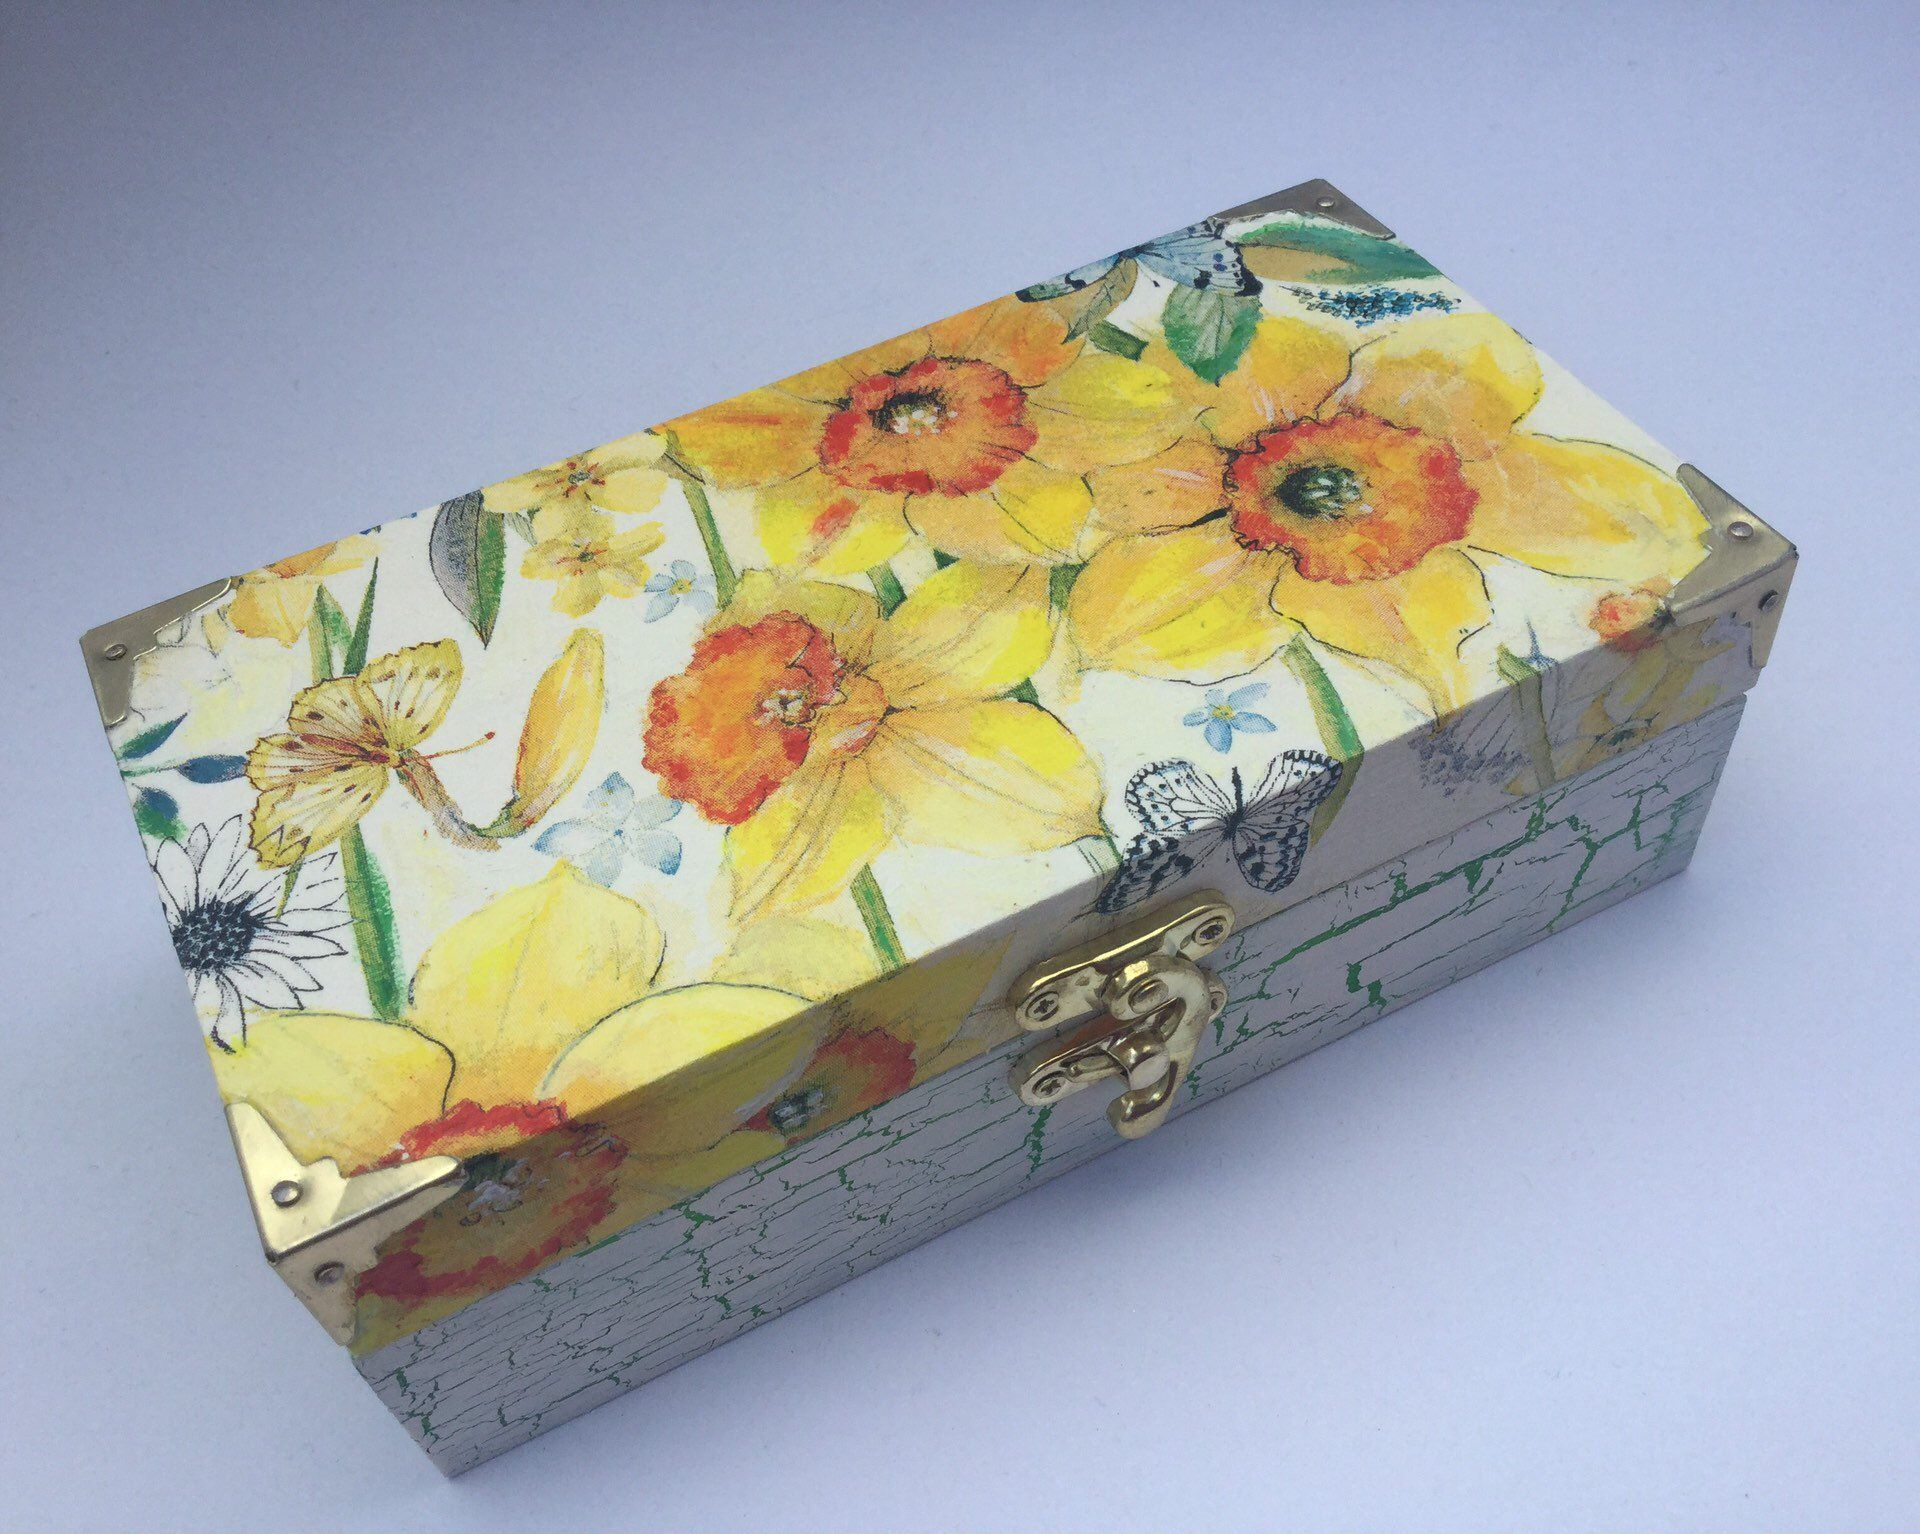 Excited To Share This Item From My Etsy Shop Yellow Daffodil Decorated Keepsake Box Hand Painted And Decoupage Techni Caixas Decoradas Bijuterias Artesanato